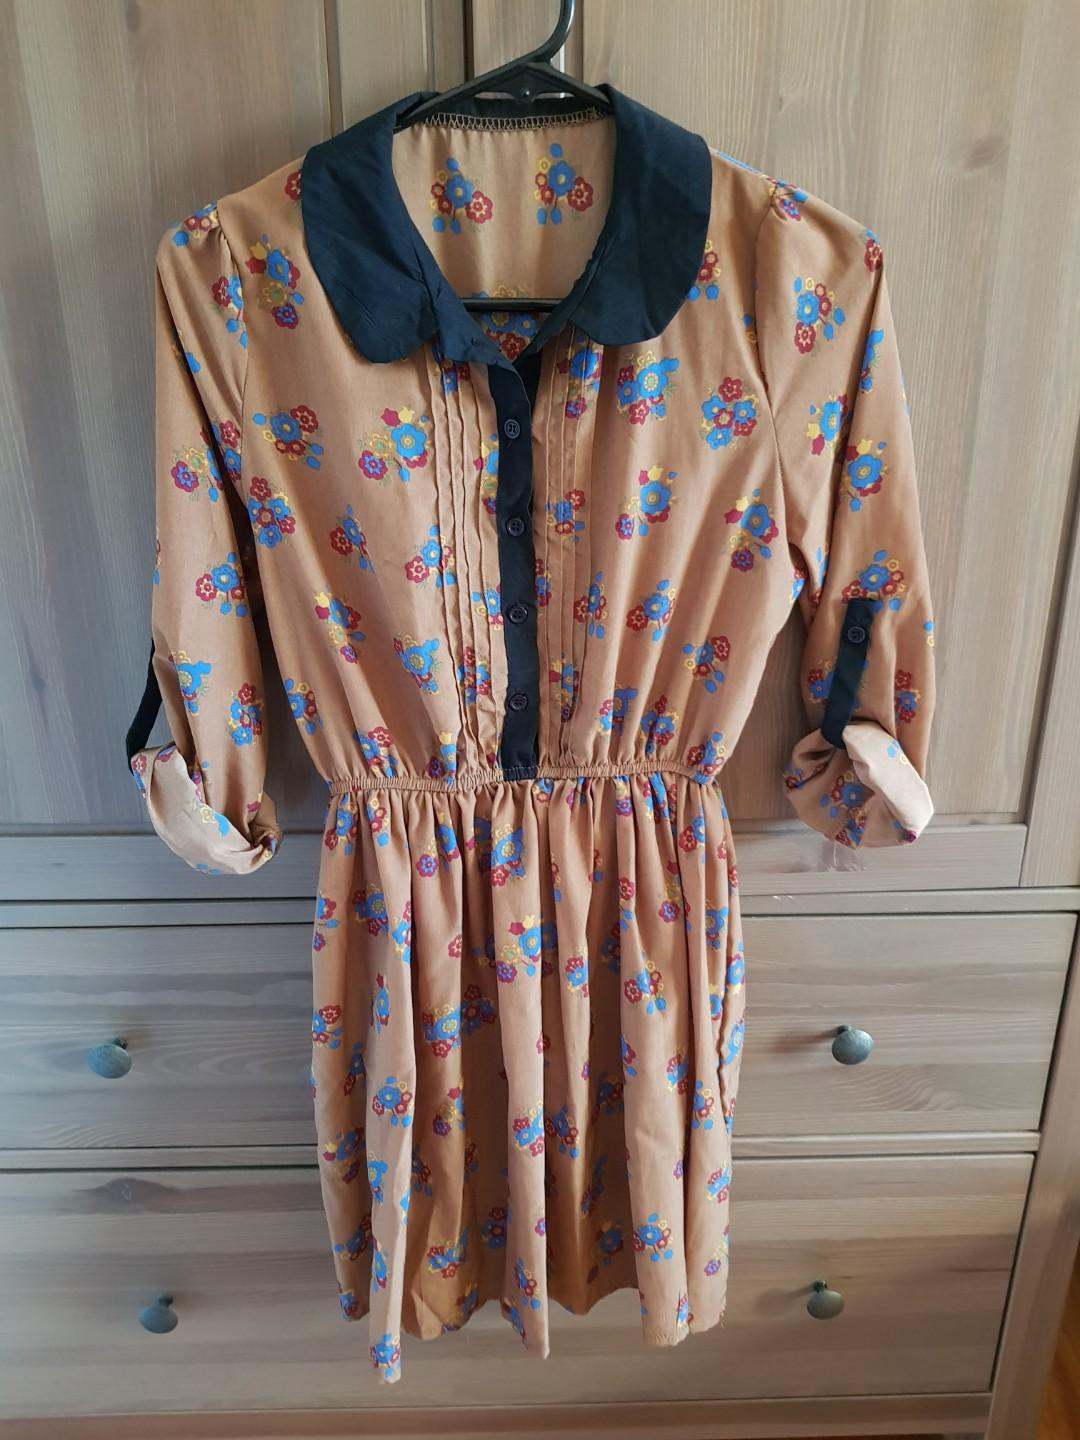 Floral Button Collared Dress Mid to Long Sleeve Size 8 - 10